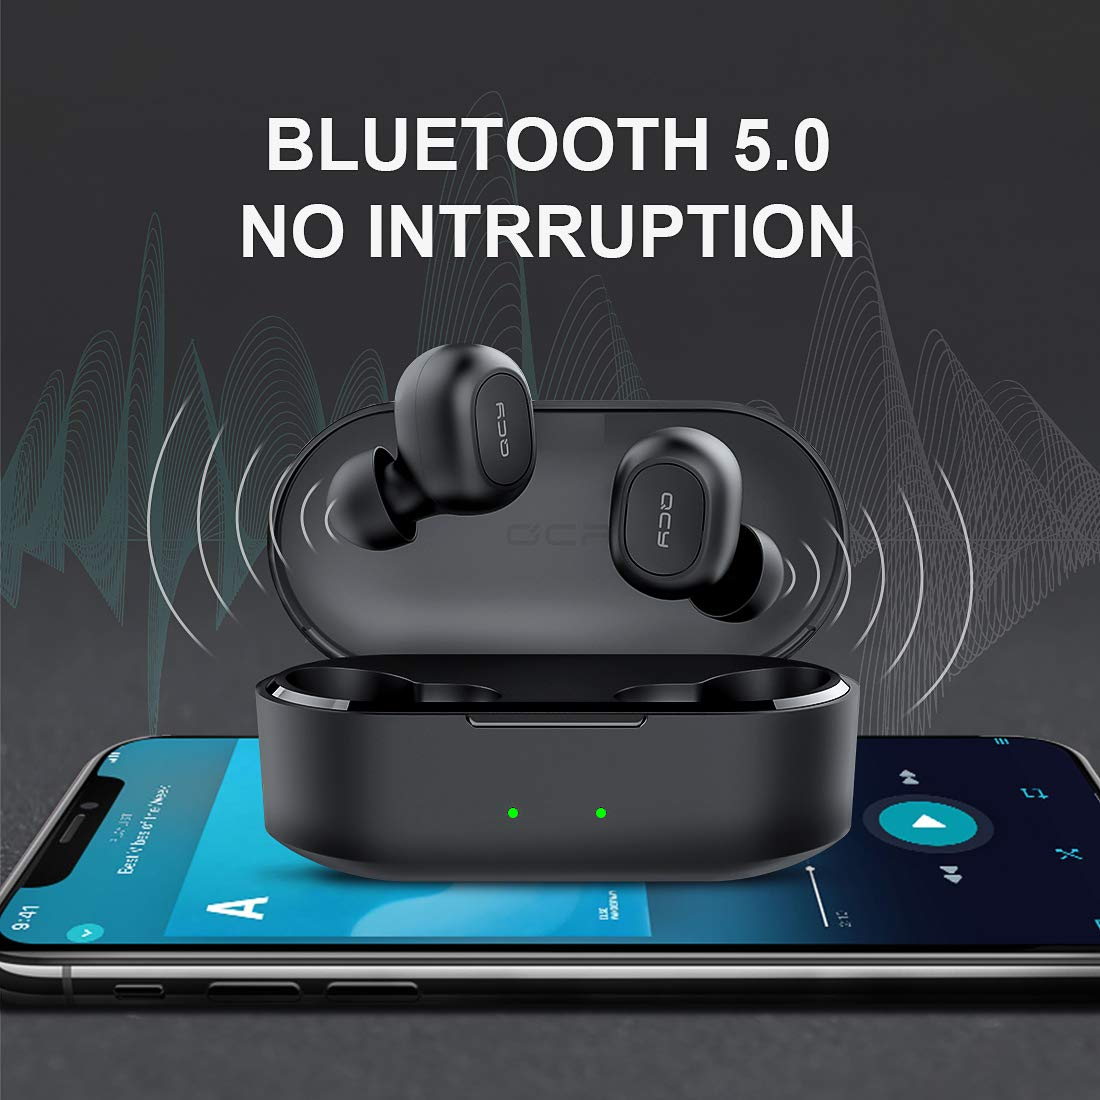 QCY T2C True Wireless Earbuds with Charging Case, 5.0 Bluetooth Headphones, Black